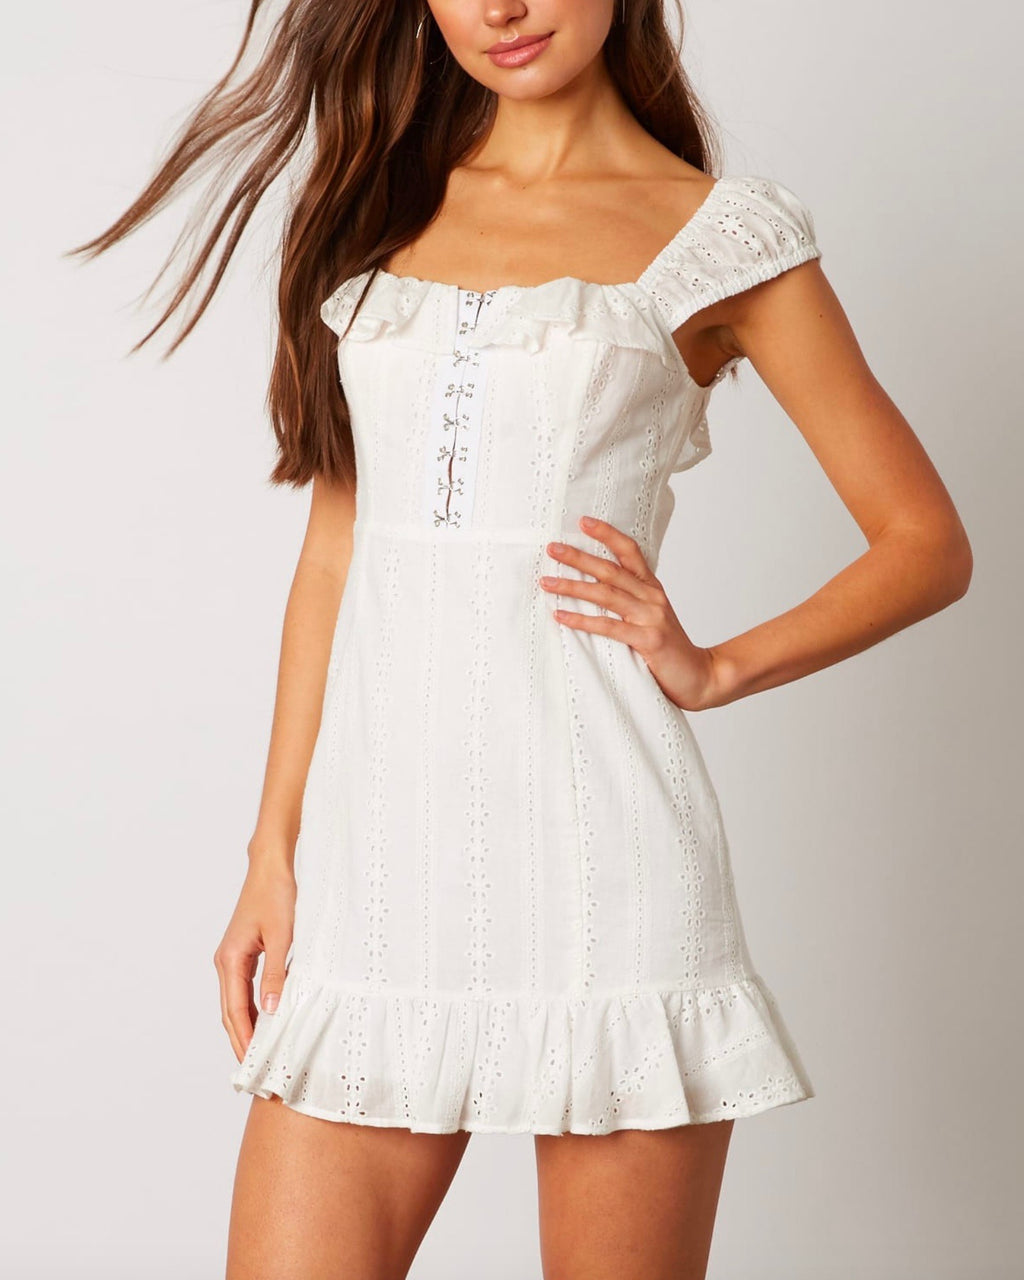 hook and eye front closure with ruffled trim eyelet mini dress in white